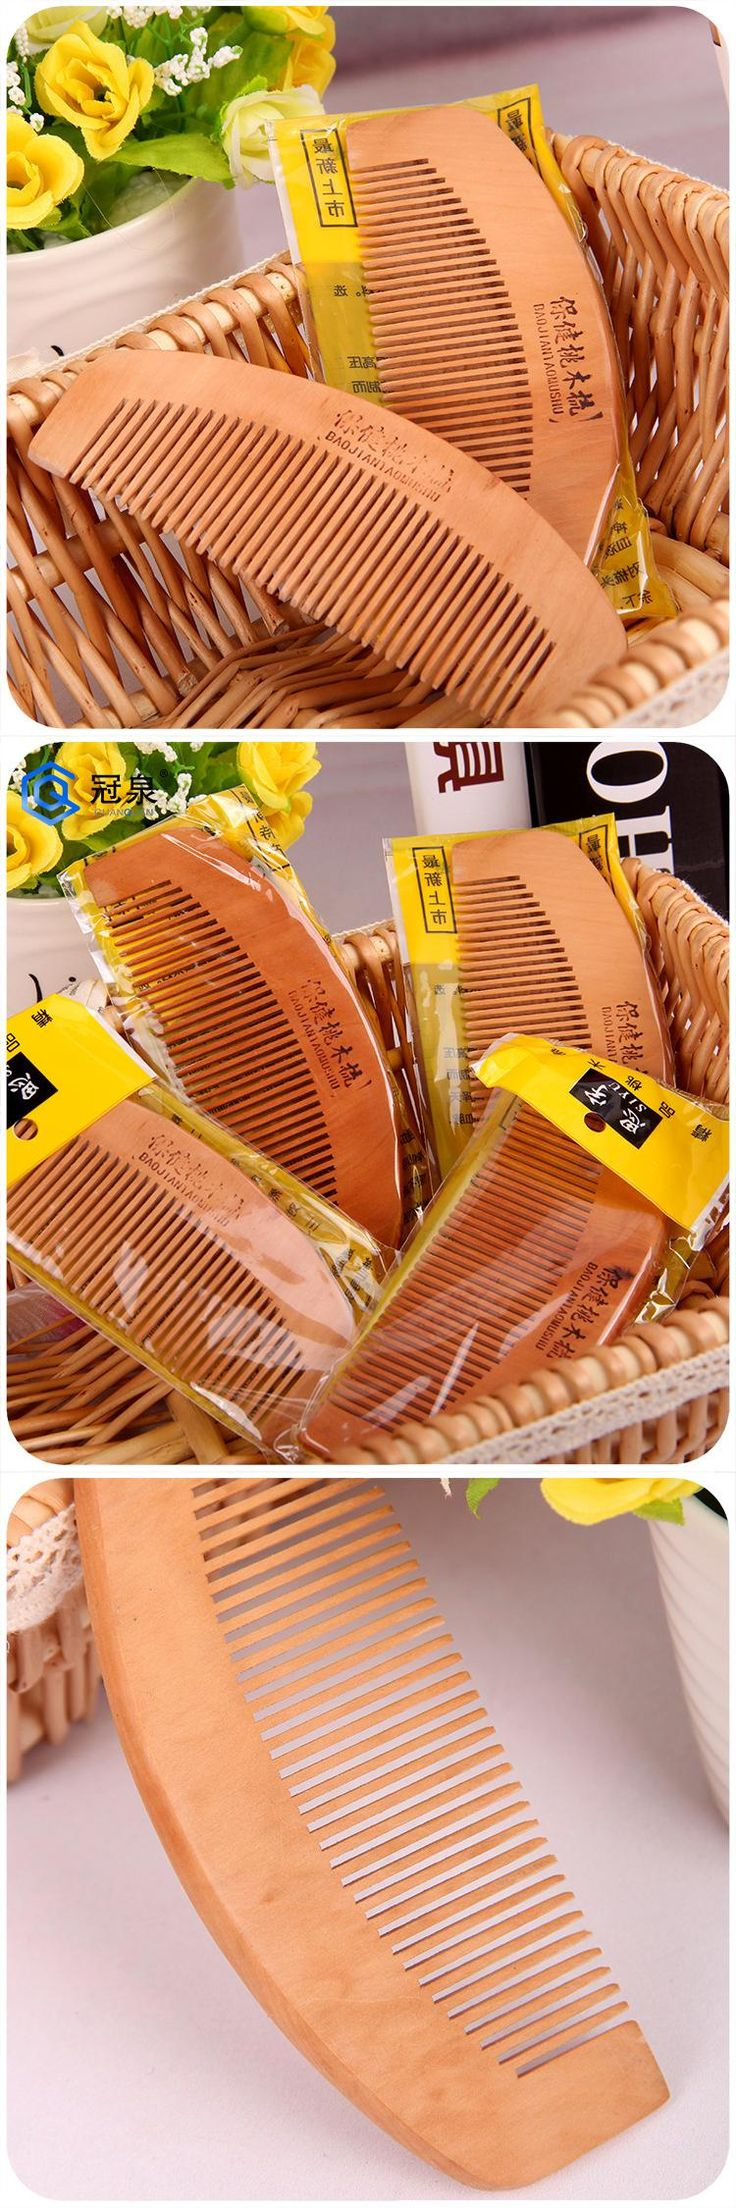 [Visit to Buy] 1pcs Natural Sandalwood Comb cepillo de pelo hairbrush Wide Tooth No-static Massage Hair Brush Health Wooden Comb massager smrp #Advertisement